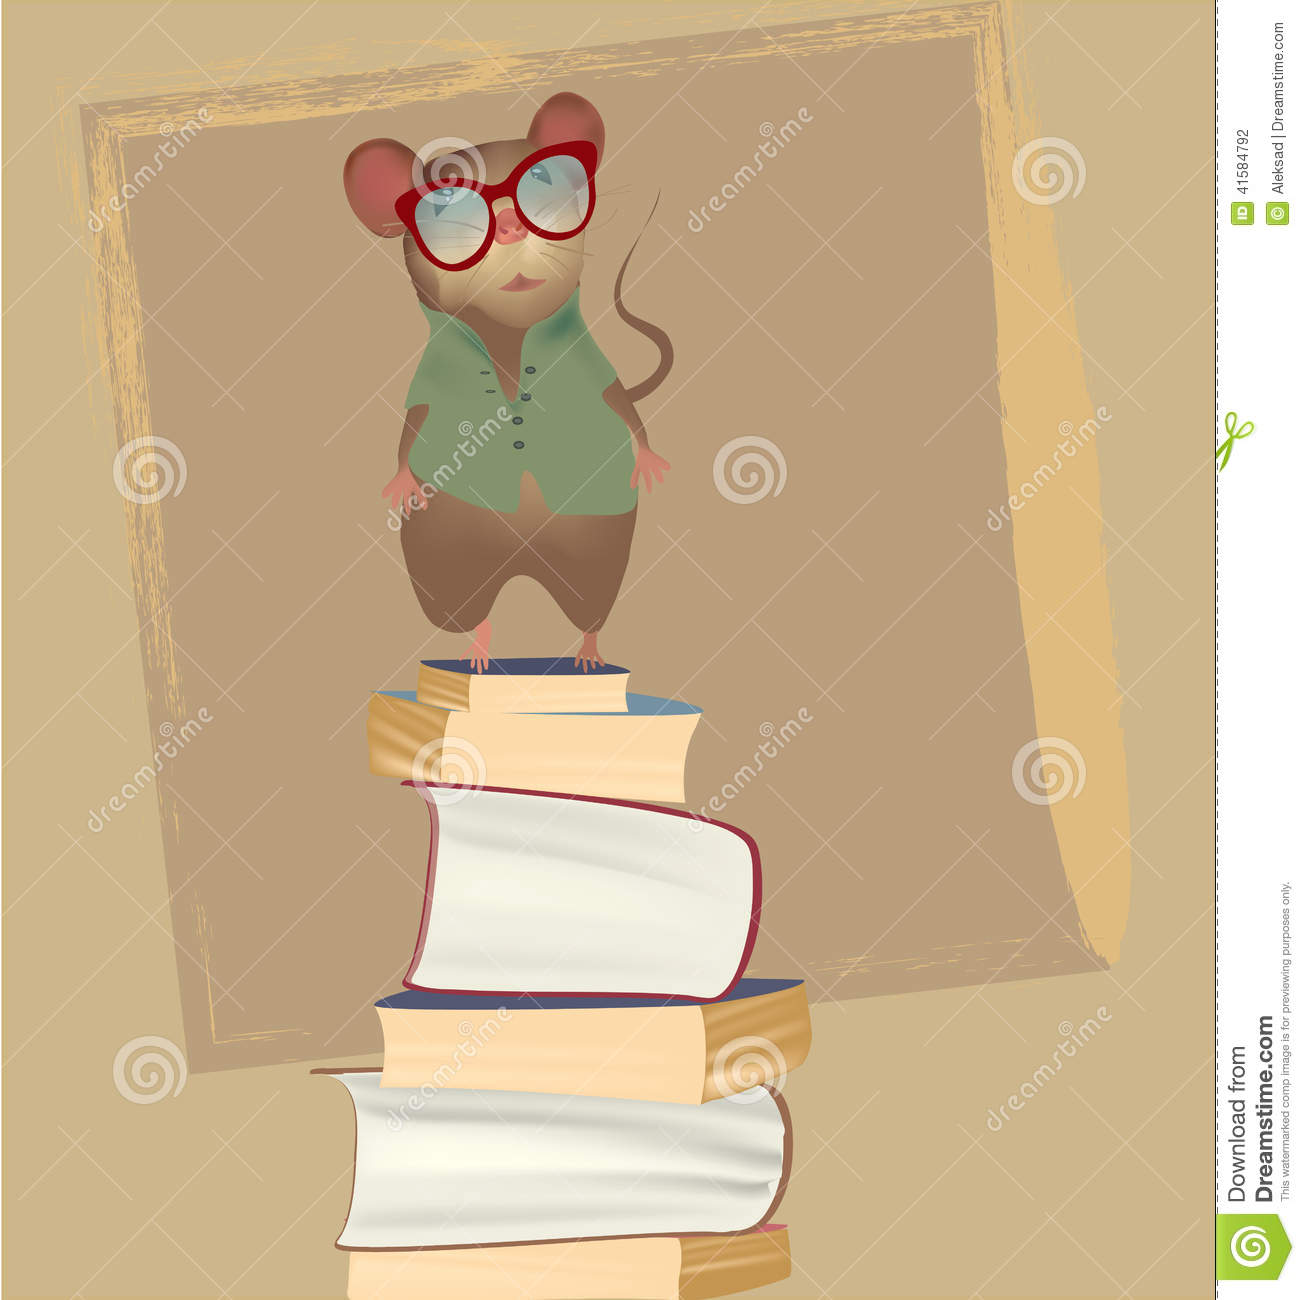 Mouse on a pile of books